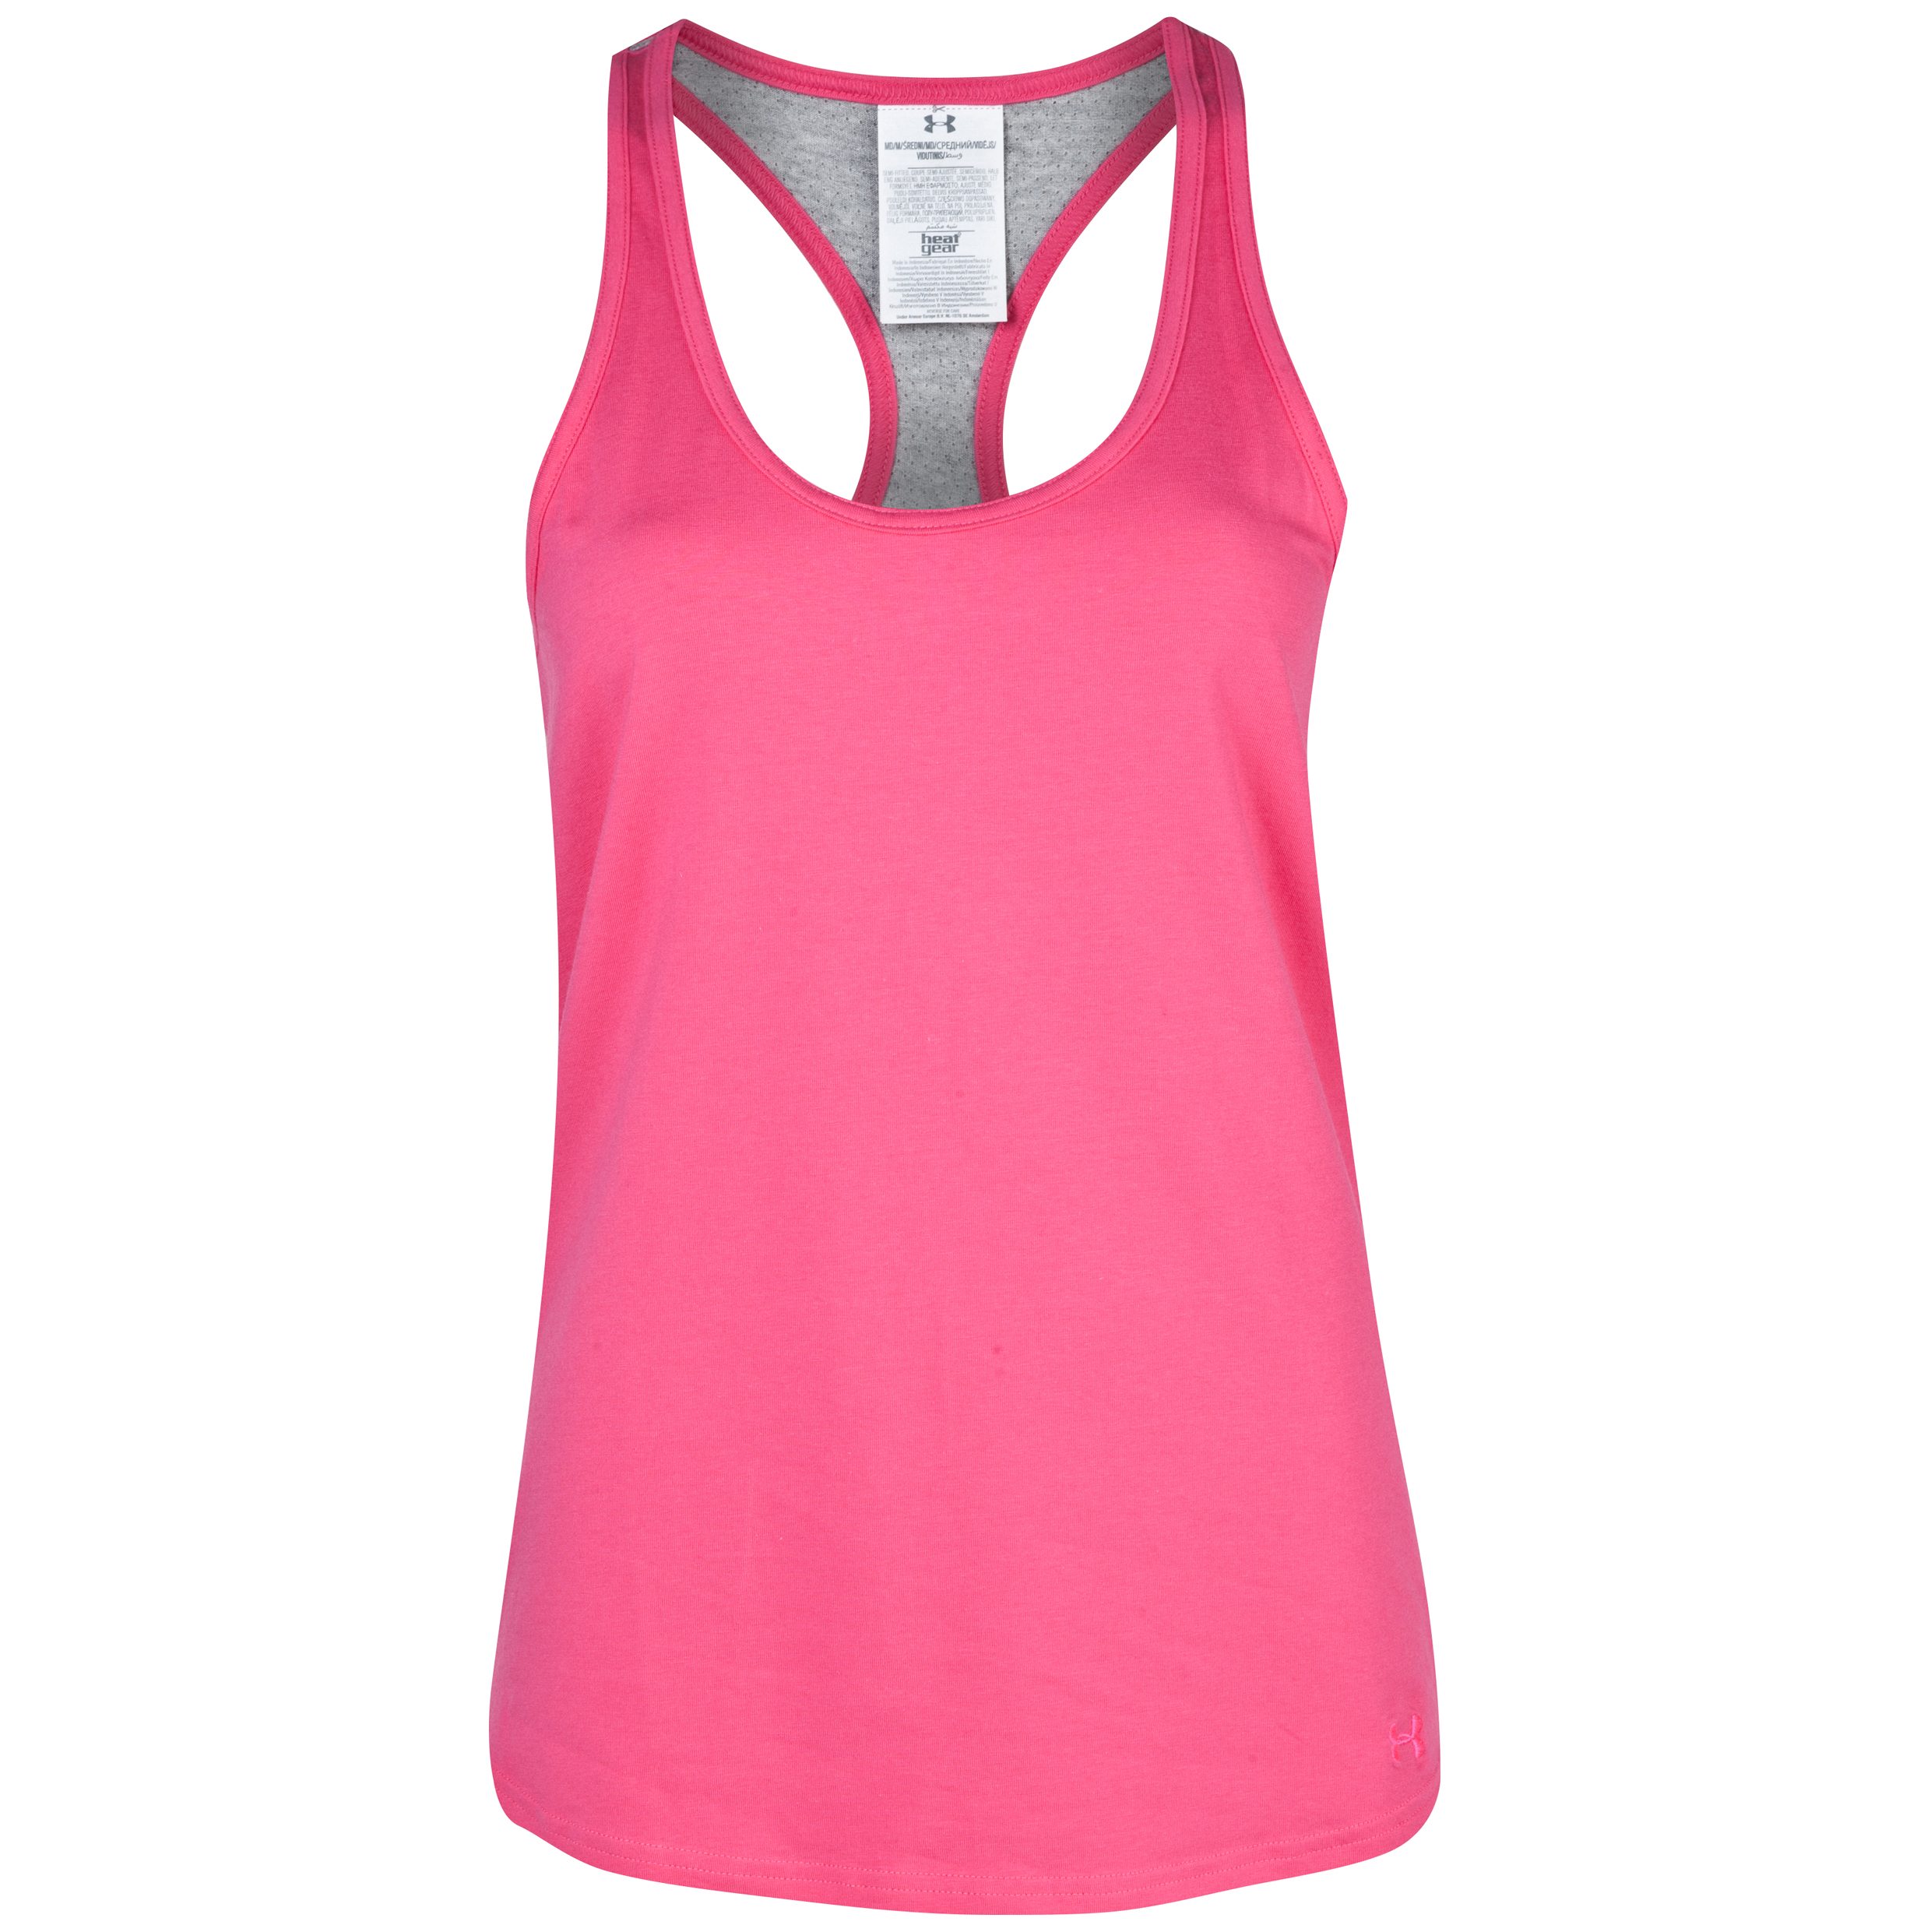 Lifestyle Under Armour Charged Cotton Equip Tank - Pinkadelic - womens Pink